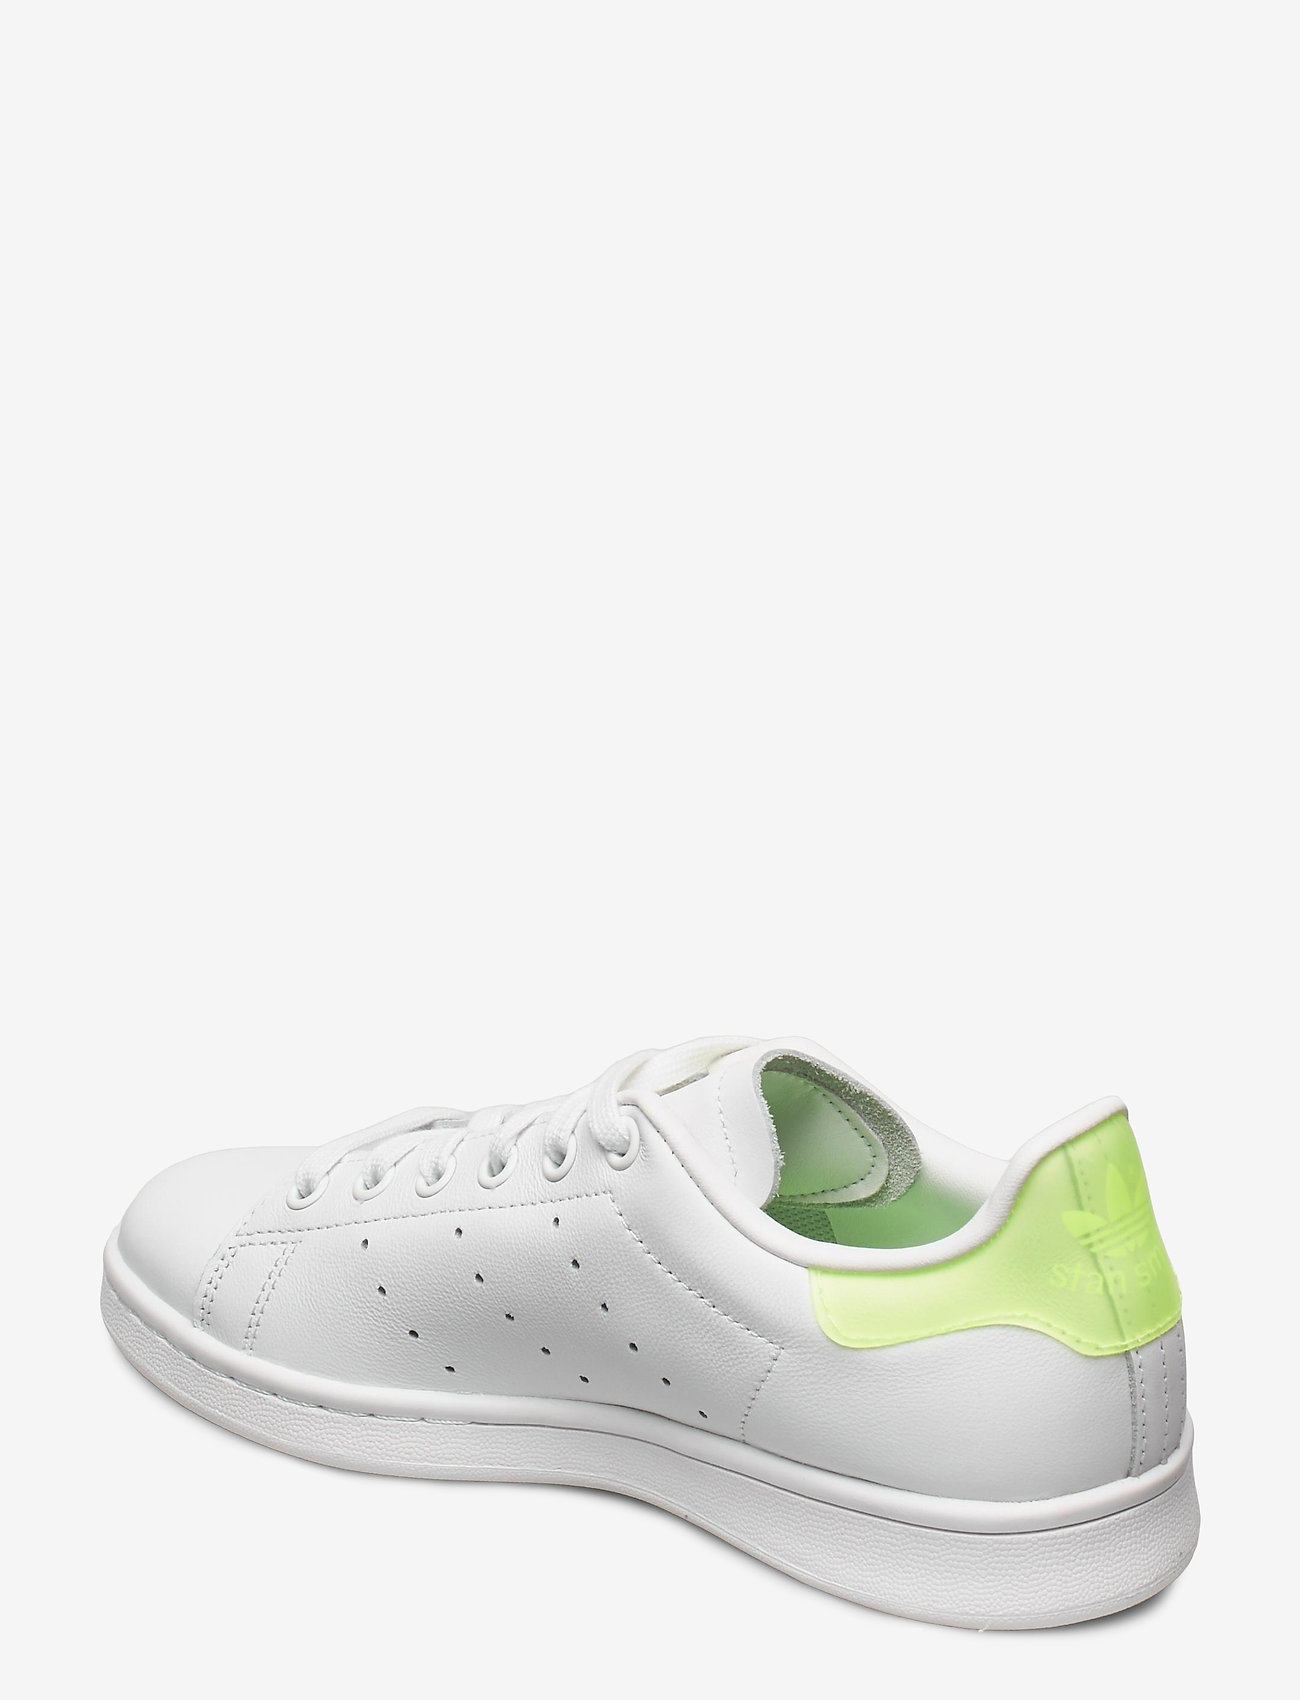 Stan Smith W (Ftwwht/hireye/siggnr) (59.97 €) - adidas Originals gT5vQ